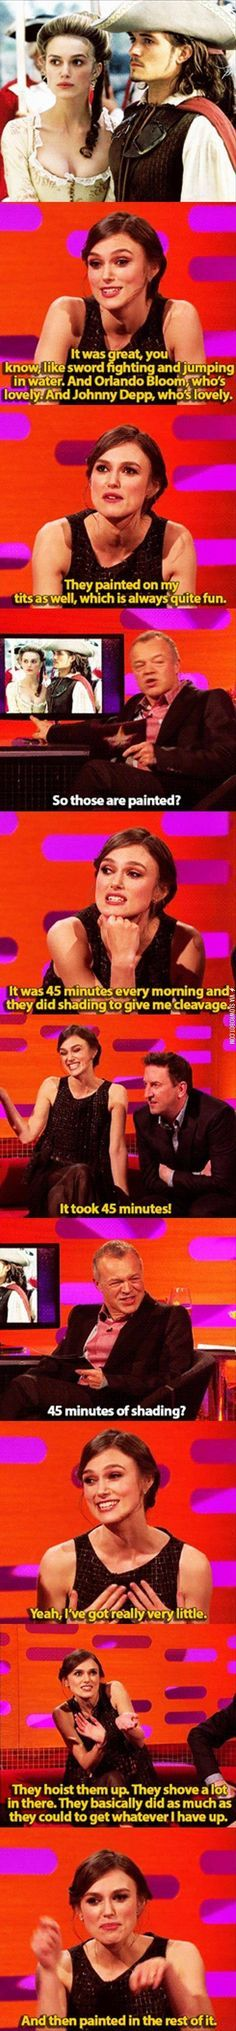 I can totally relate. Keira Knightly will always have a special place in my heart (and not just because we share the same name!)